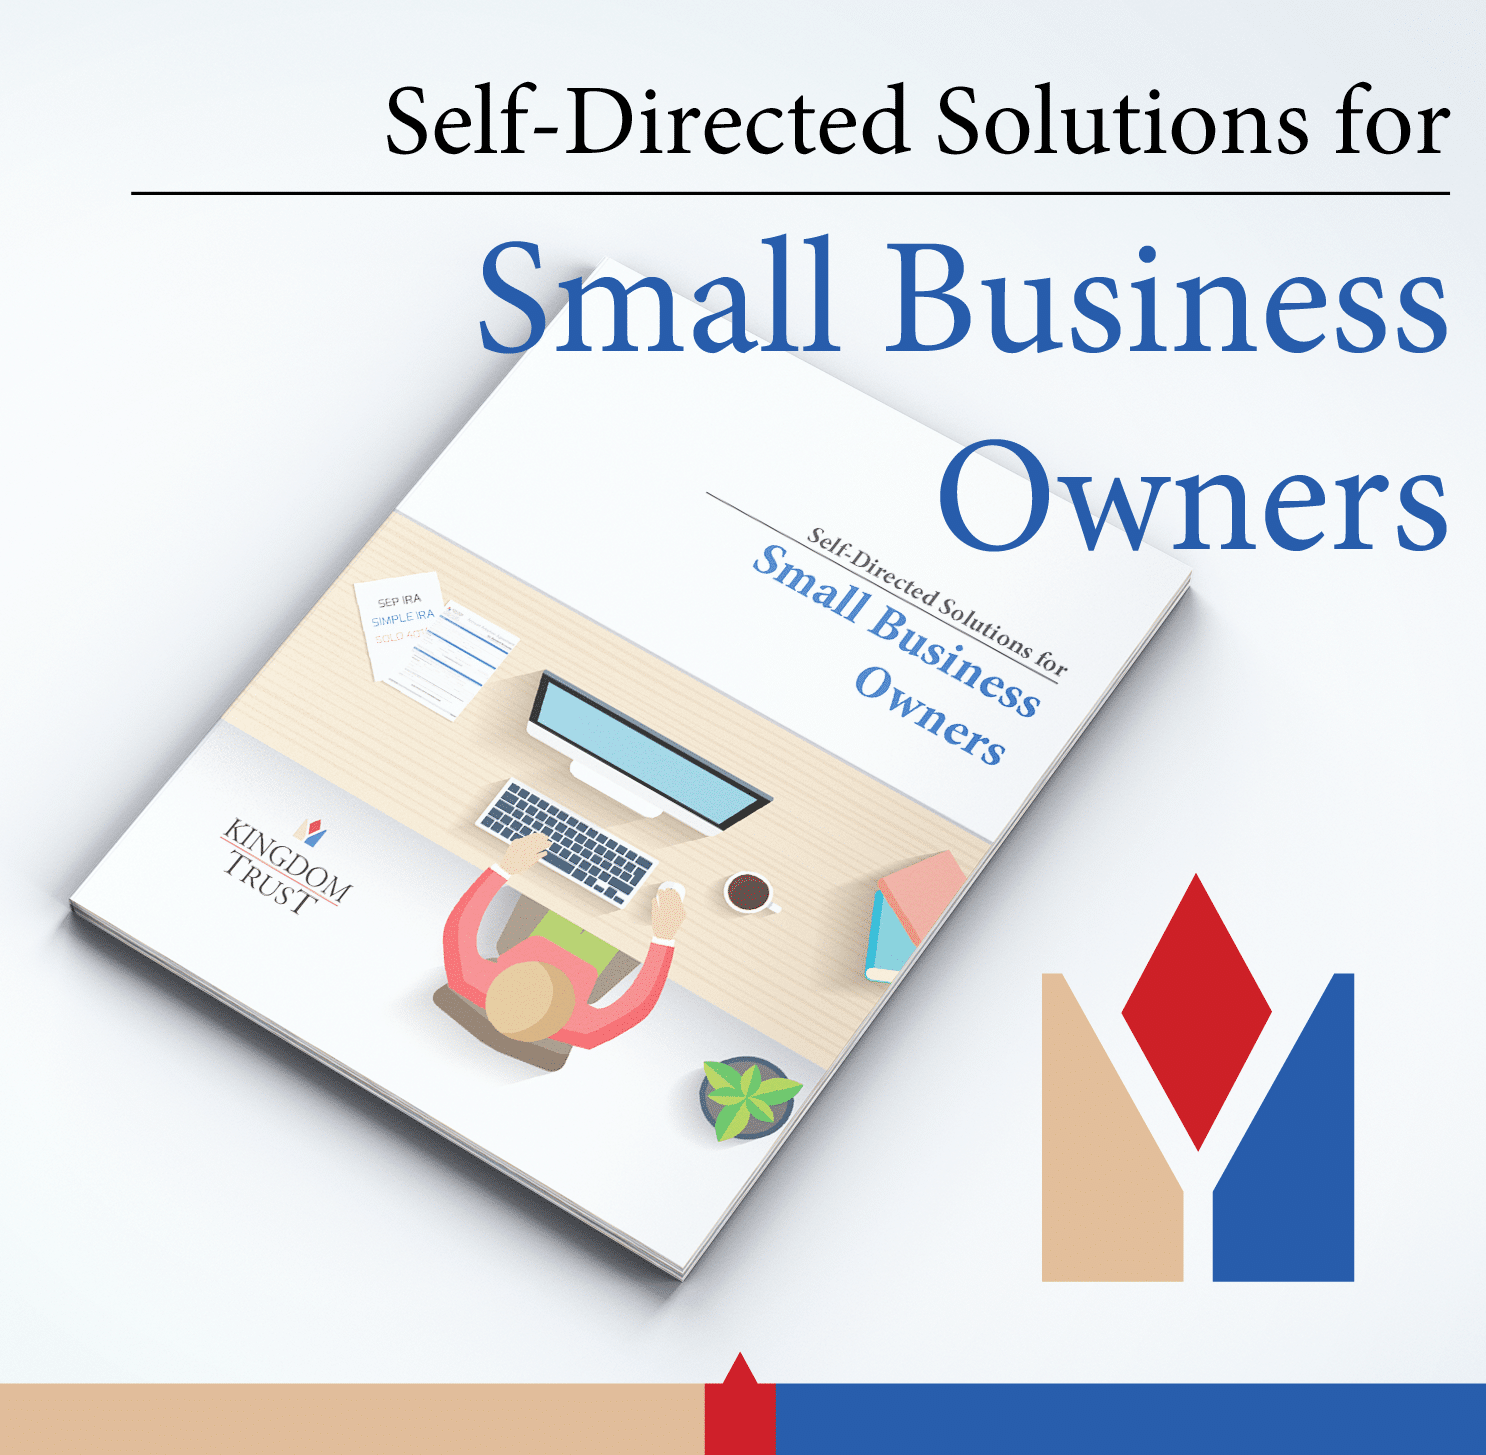 Self-Directed Solutions for Small Business Owners